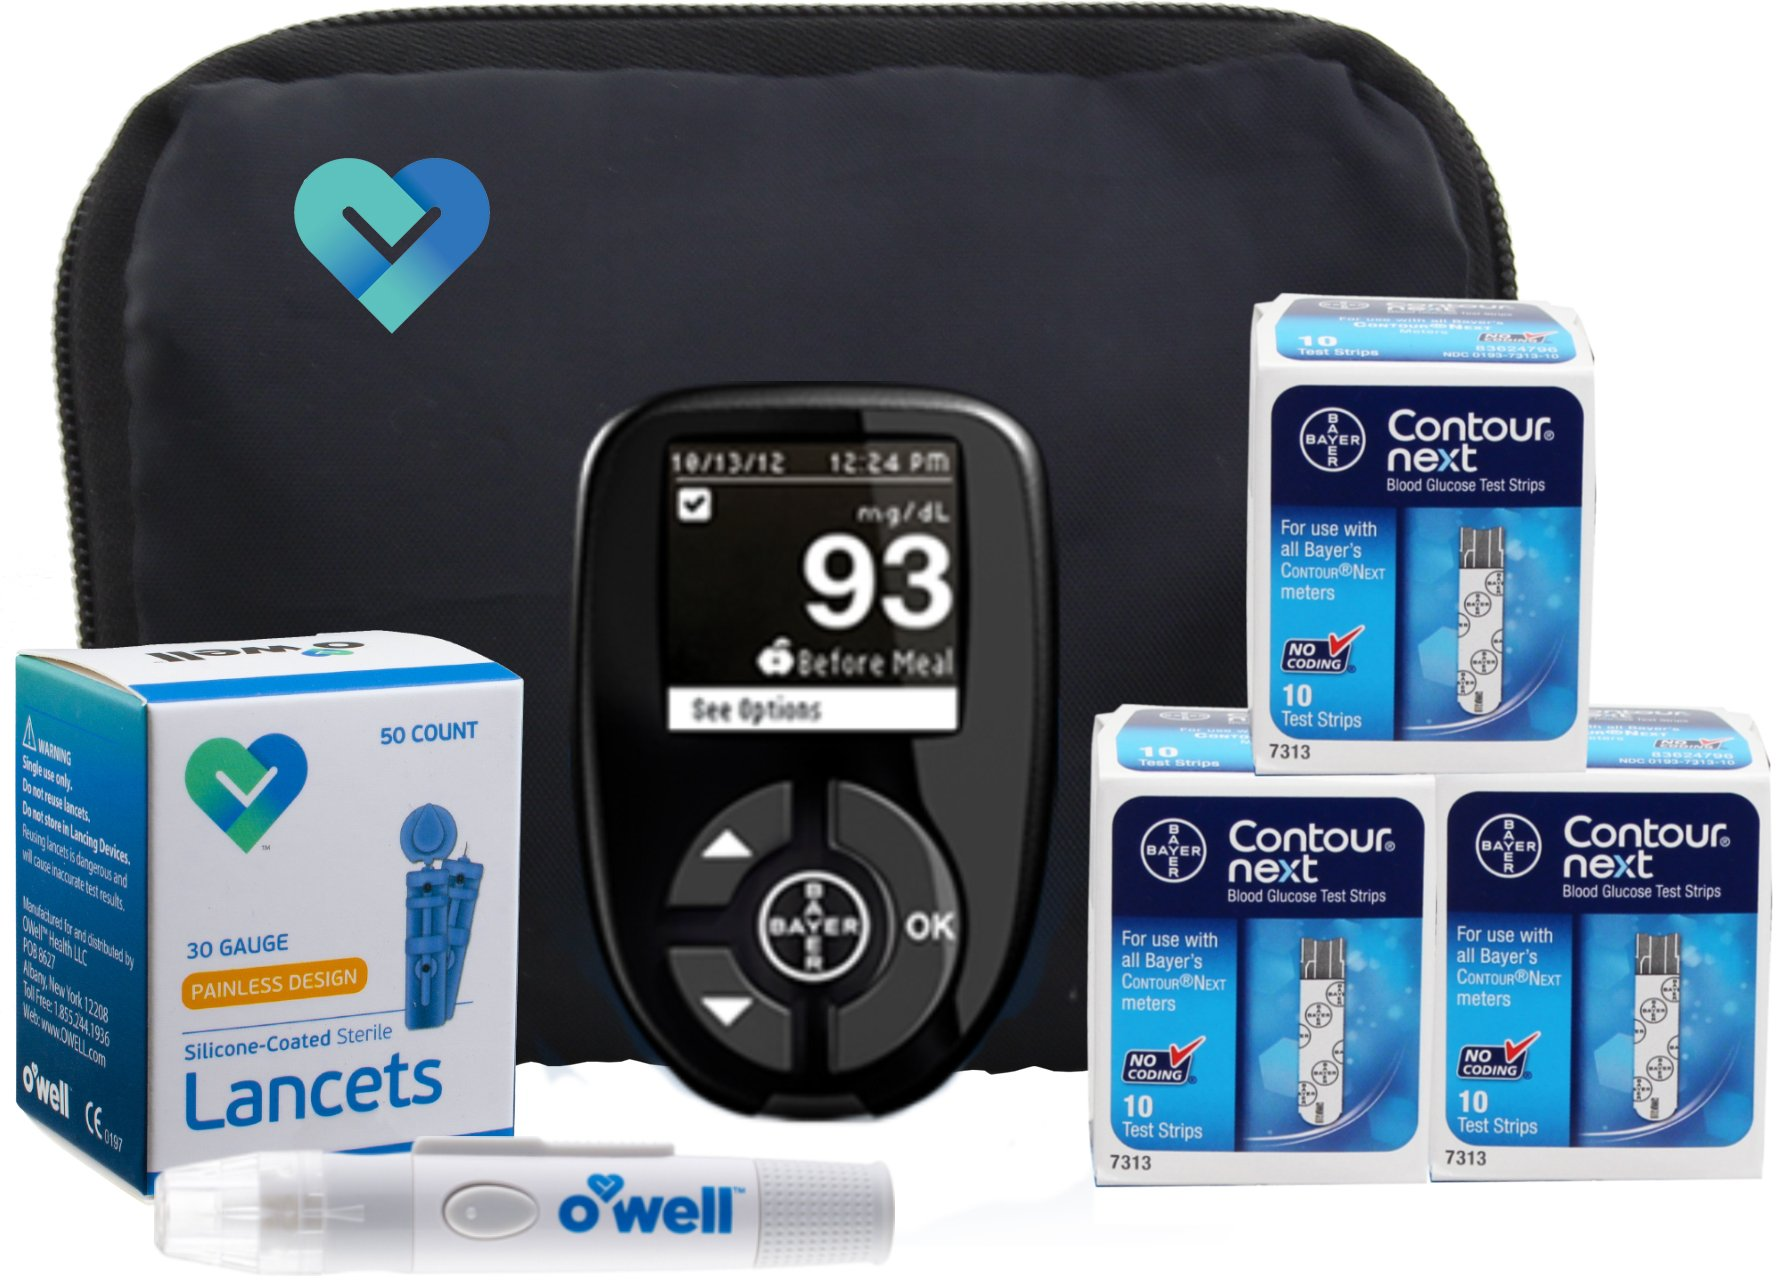 Contour NEXT Diabetes Testing Kit, 30 Count | Glucometer, 30 Test Strips, 30 Lancets, Lancing Device, Manuals, Log Book & Carry Case